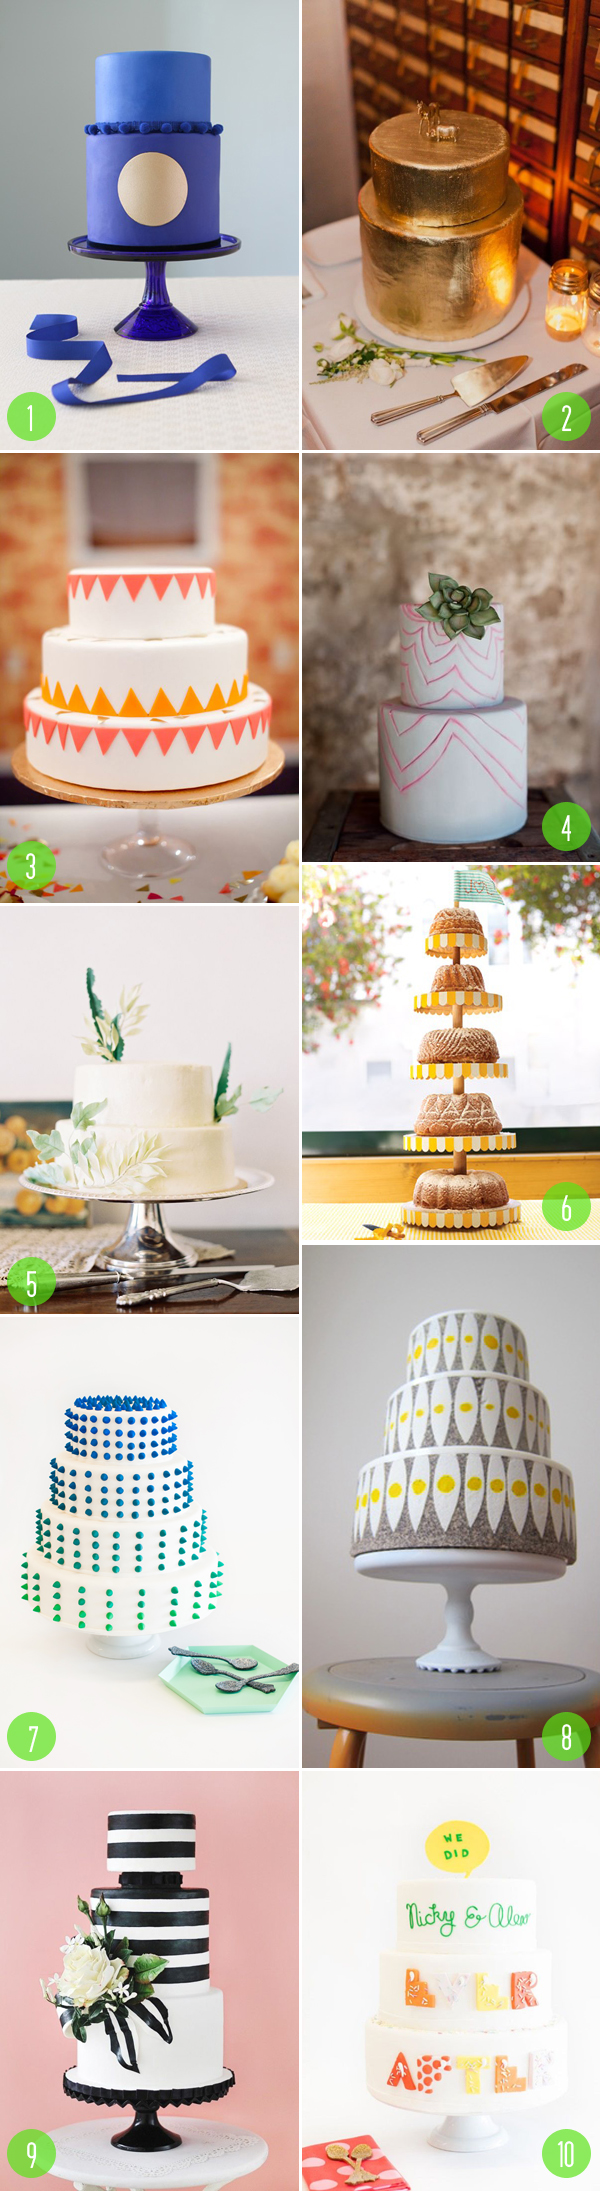 top 10: modern wedding cakes 6